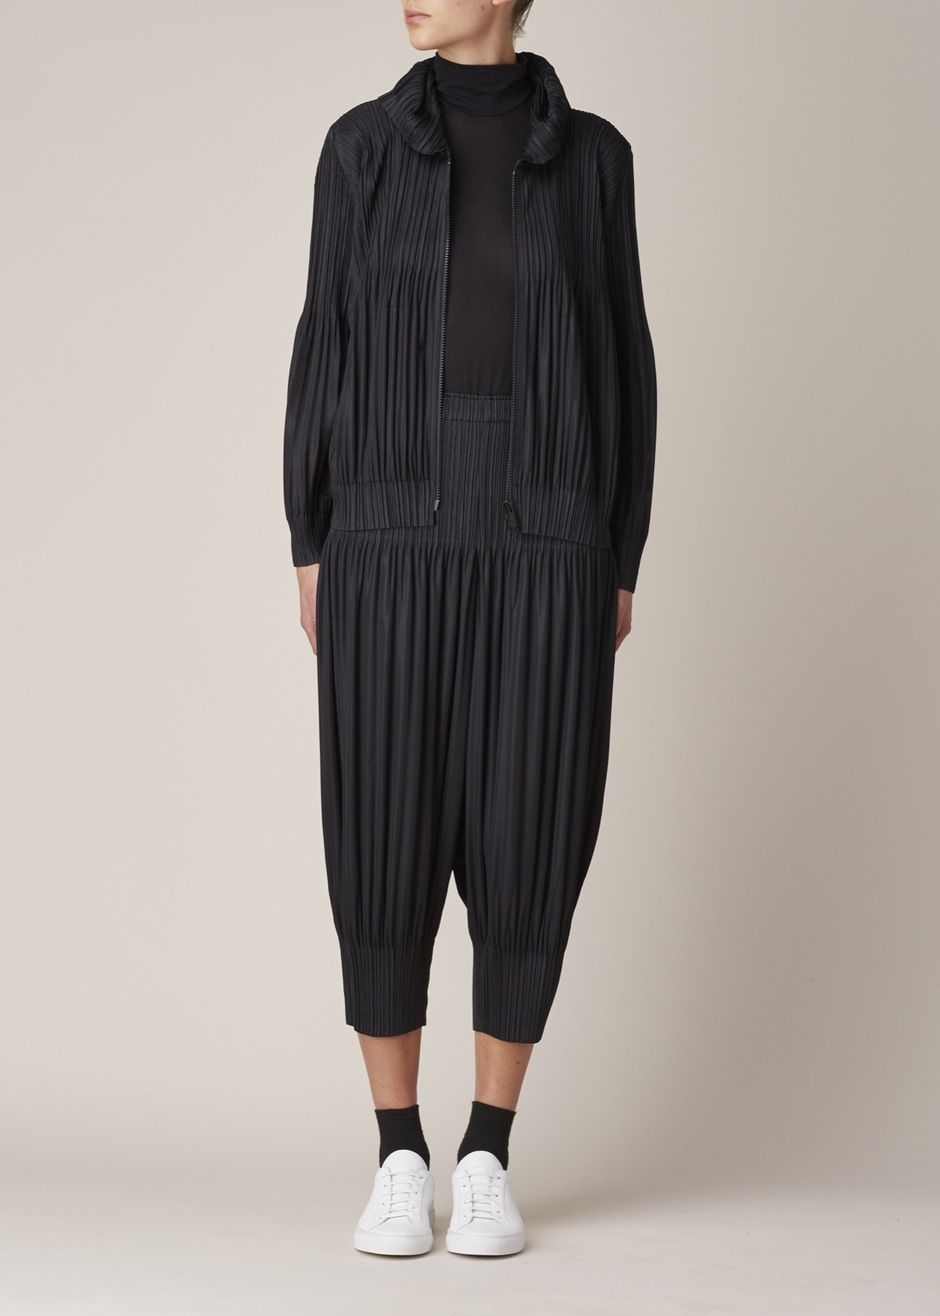 3c2998a34c66 Issey Miyake PLEATS PLEASE Pull-On Jogger Pant (Black)